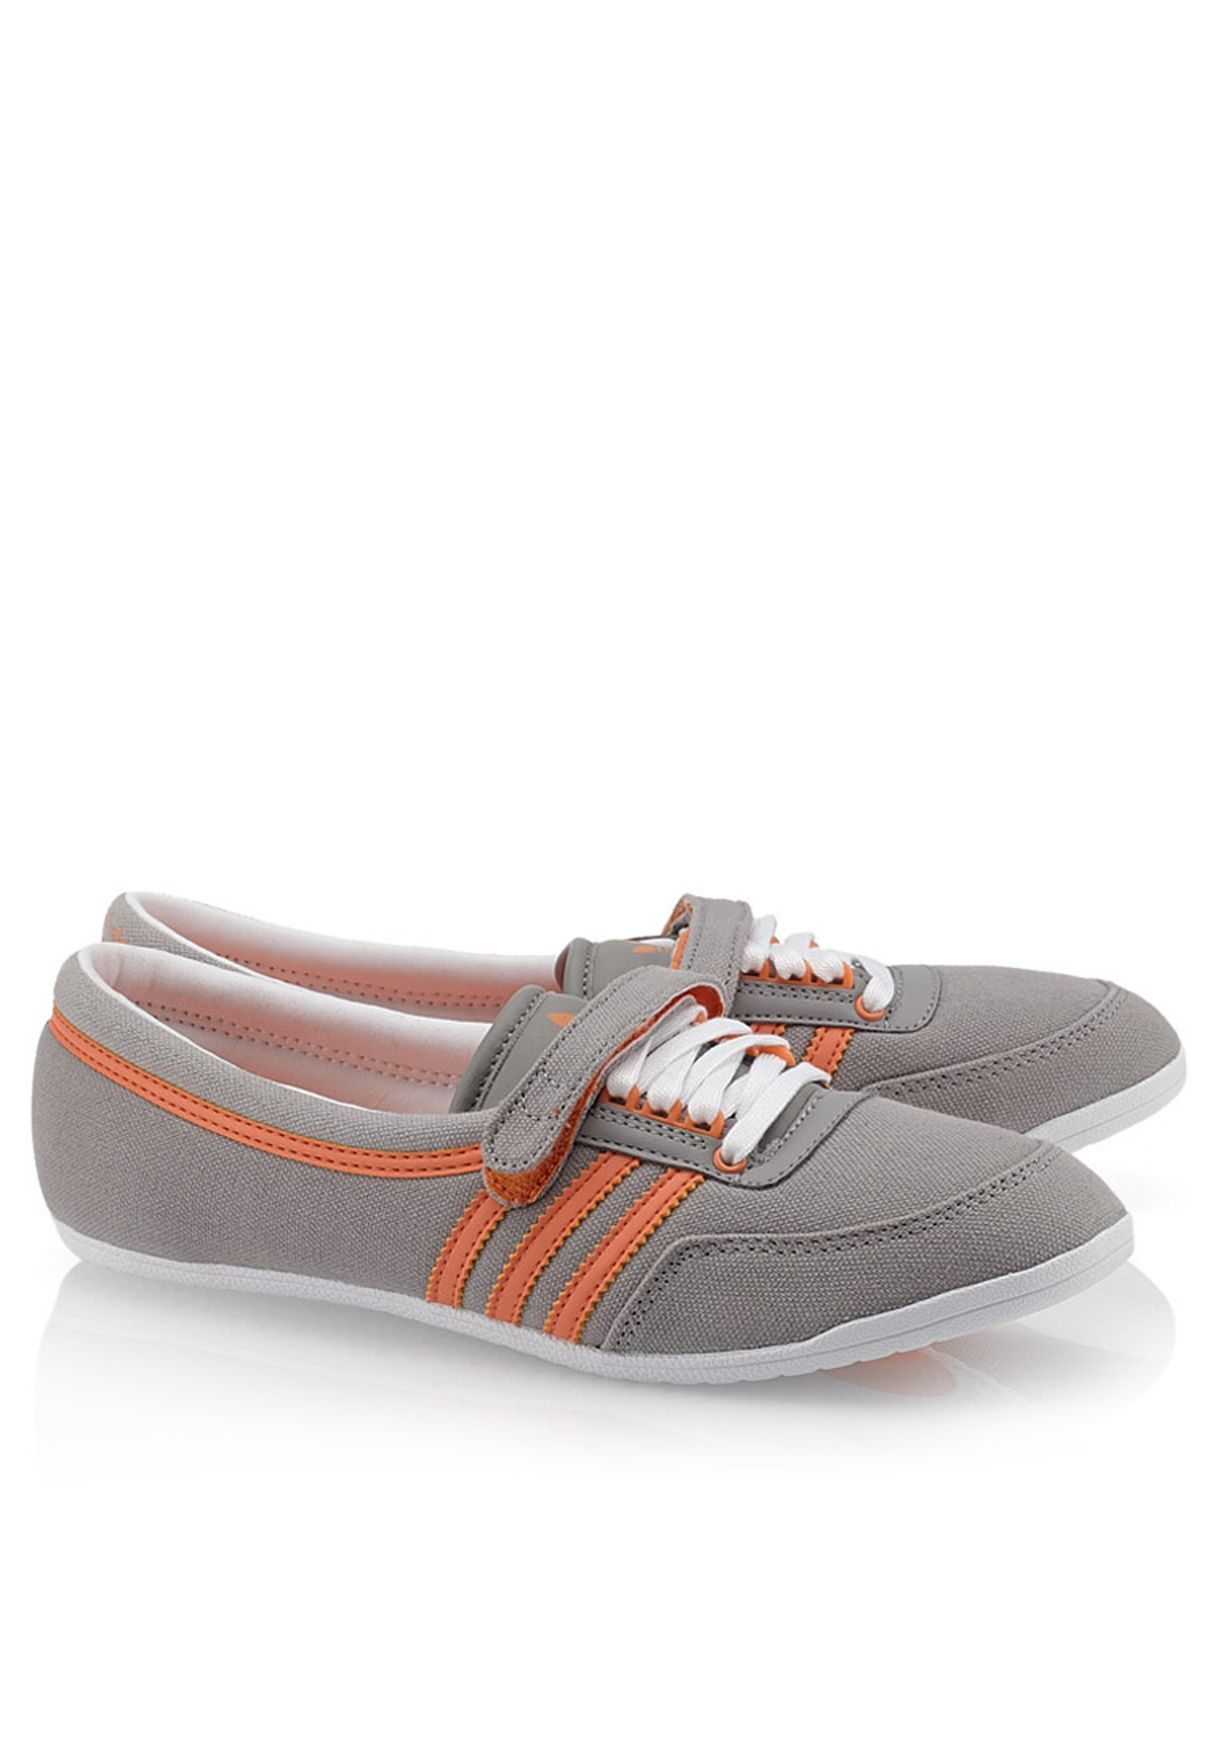 size 40 5b35b 2739d Shop adidas Originals grey Concord Round Slip Ons M22532 for Women in  Bahrain - AD478SH69WQO